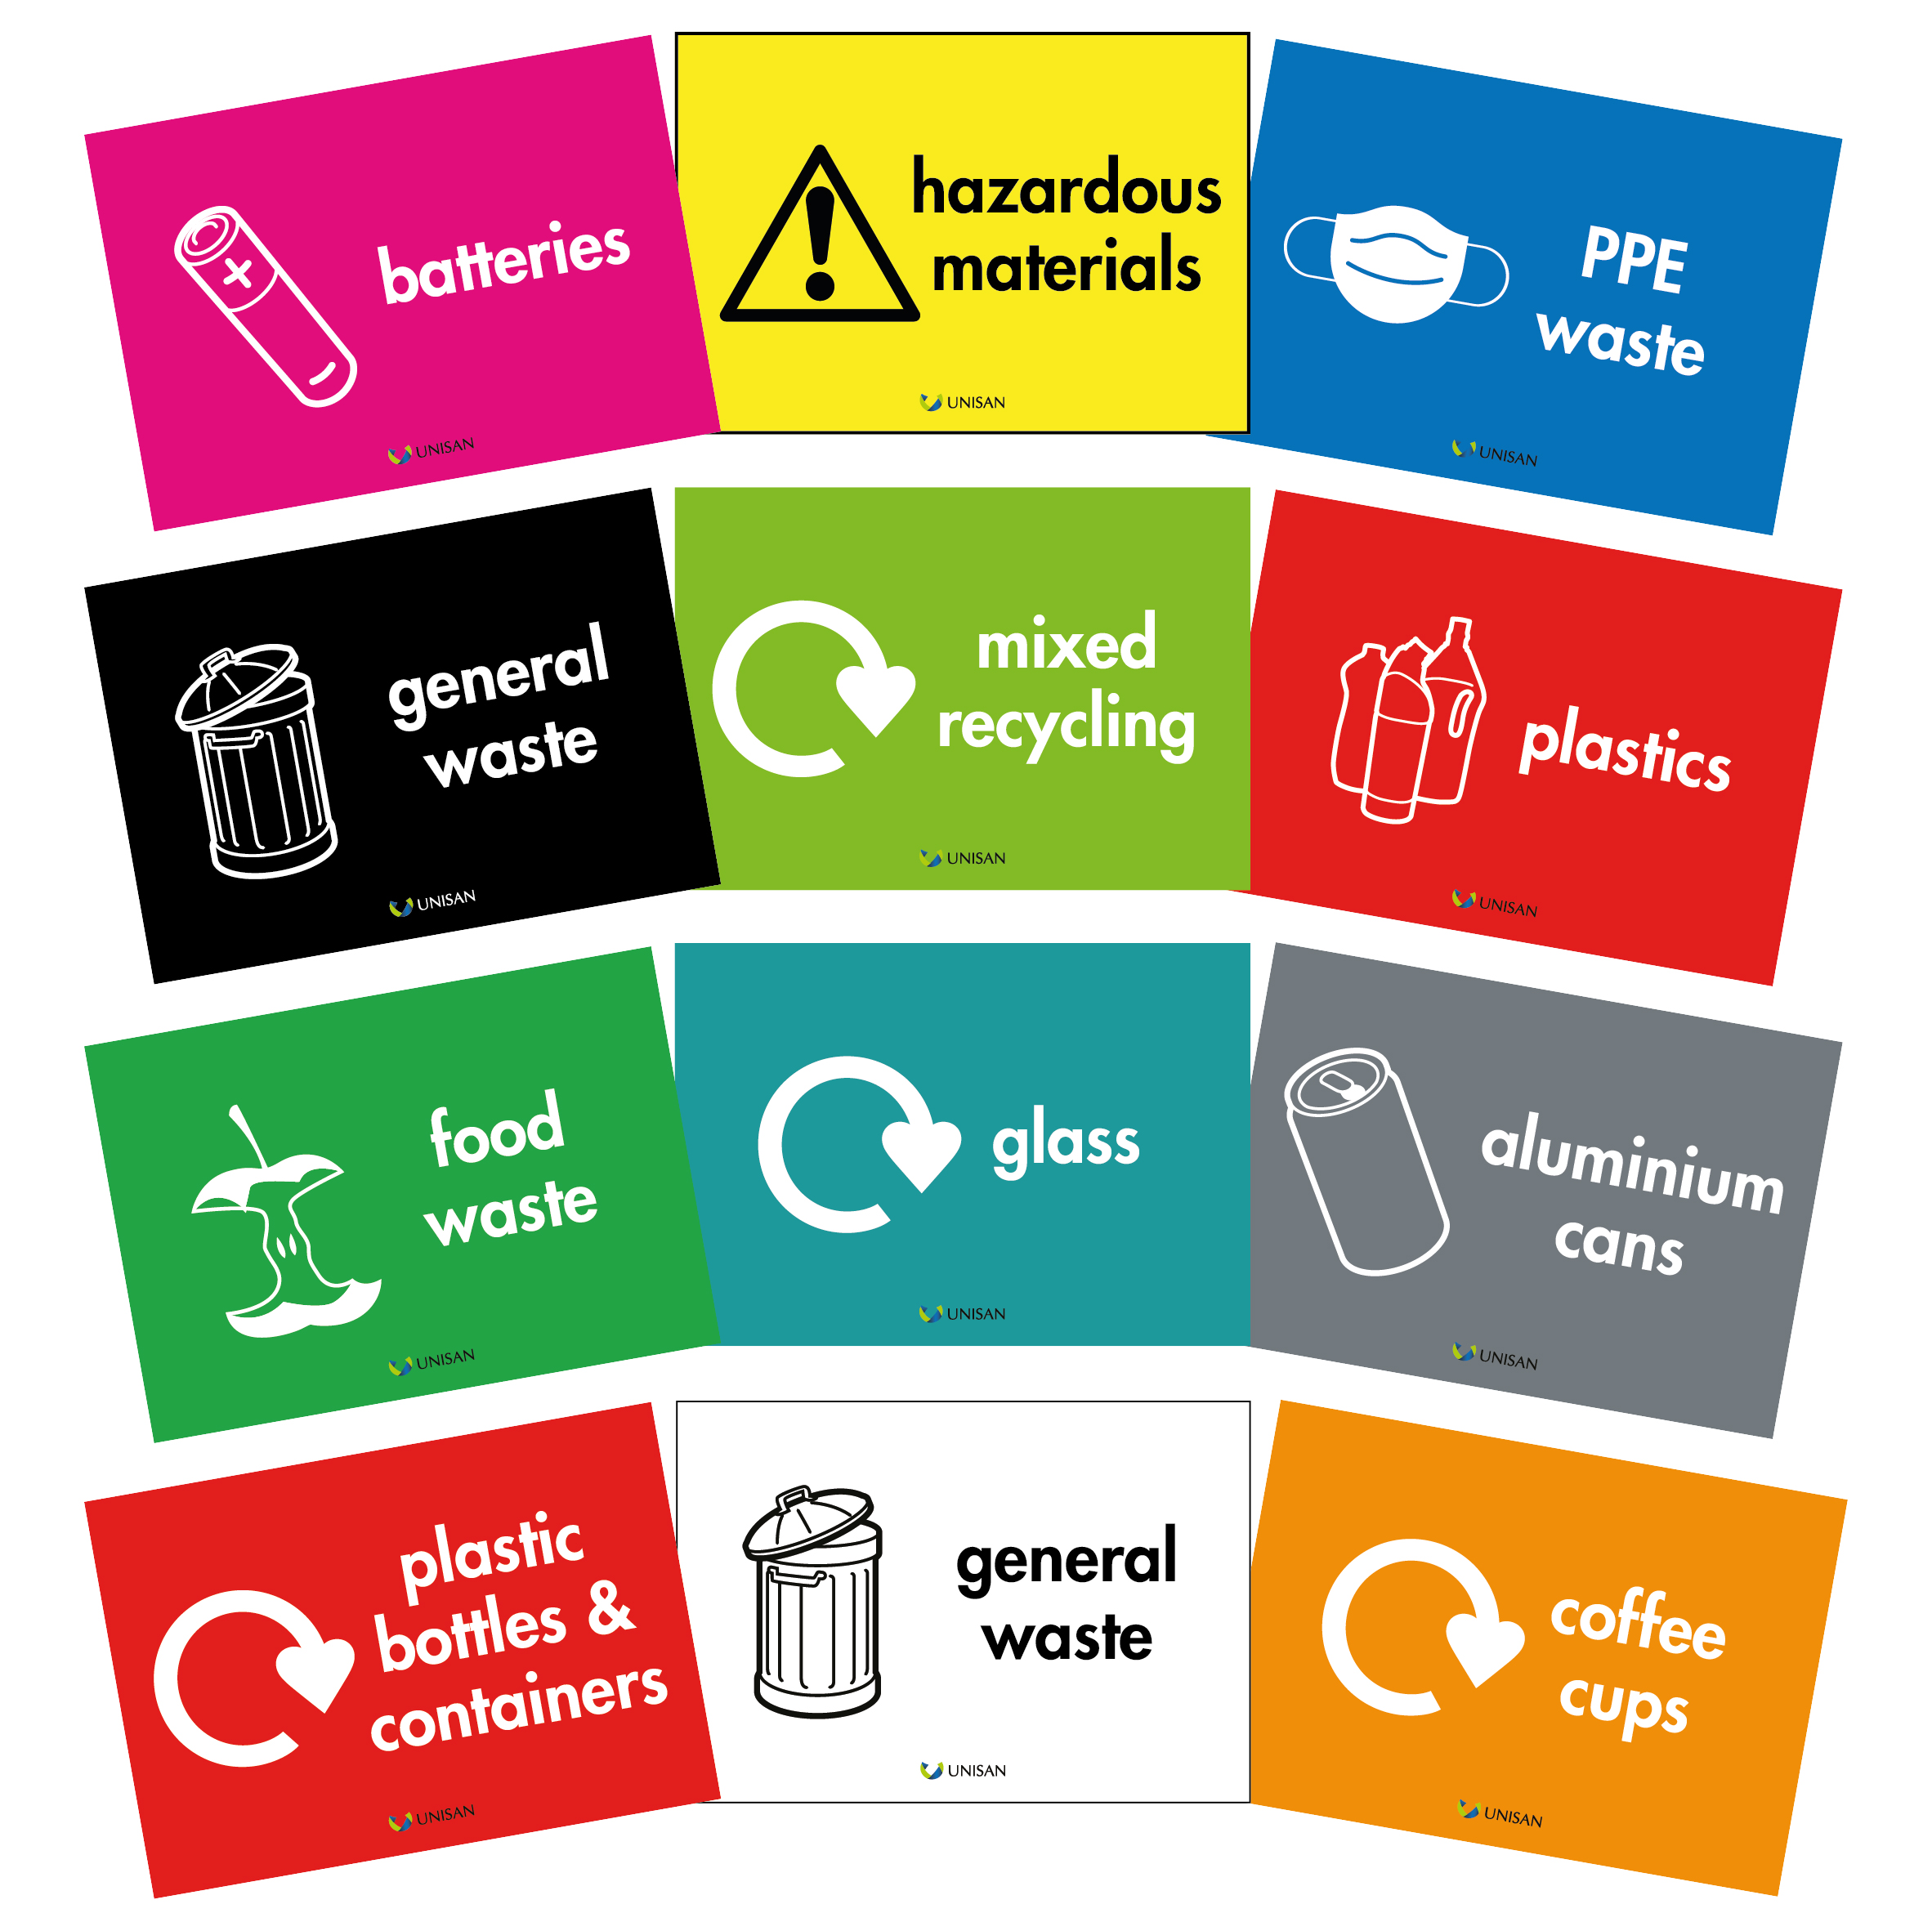 recycling bin stickers range of colours and waste streams